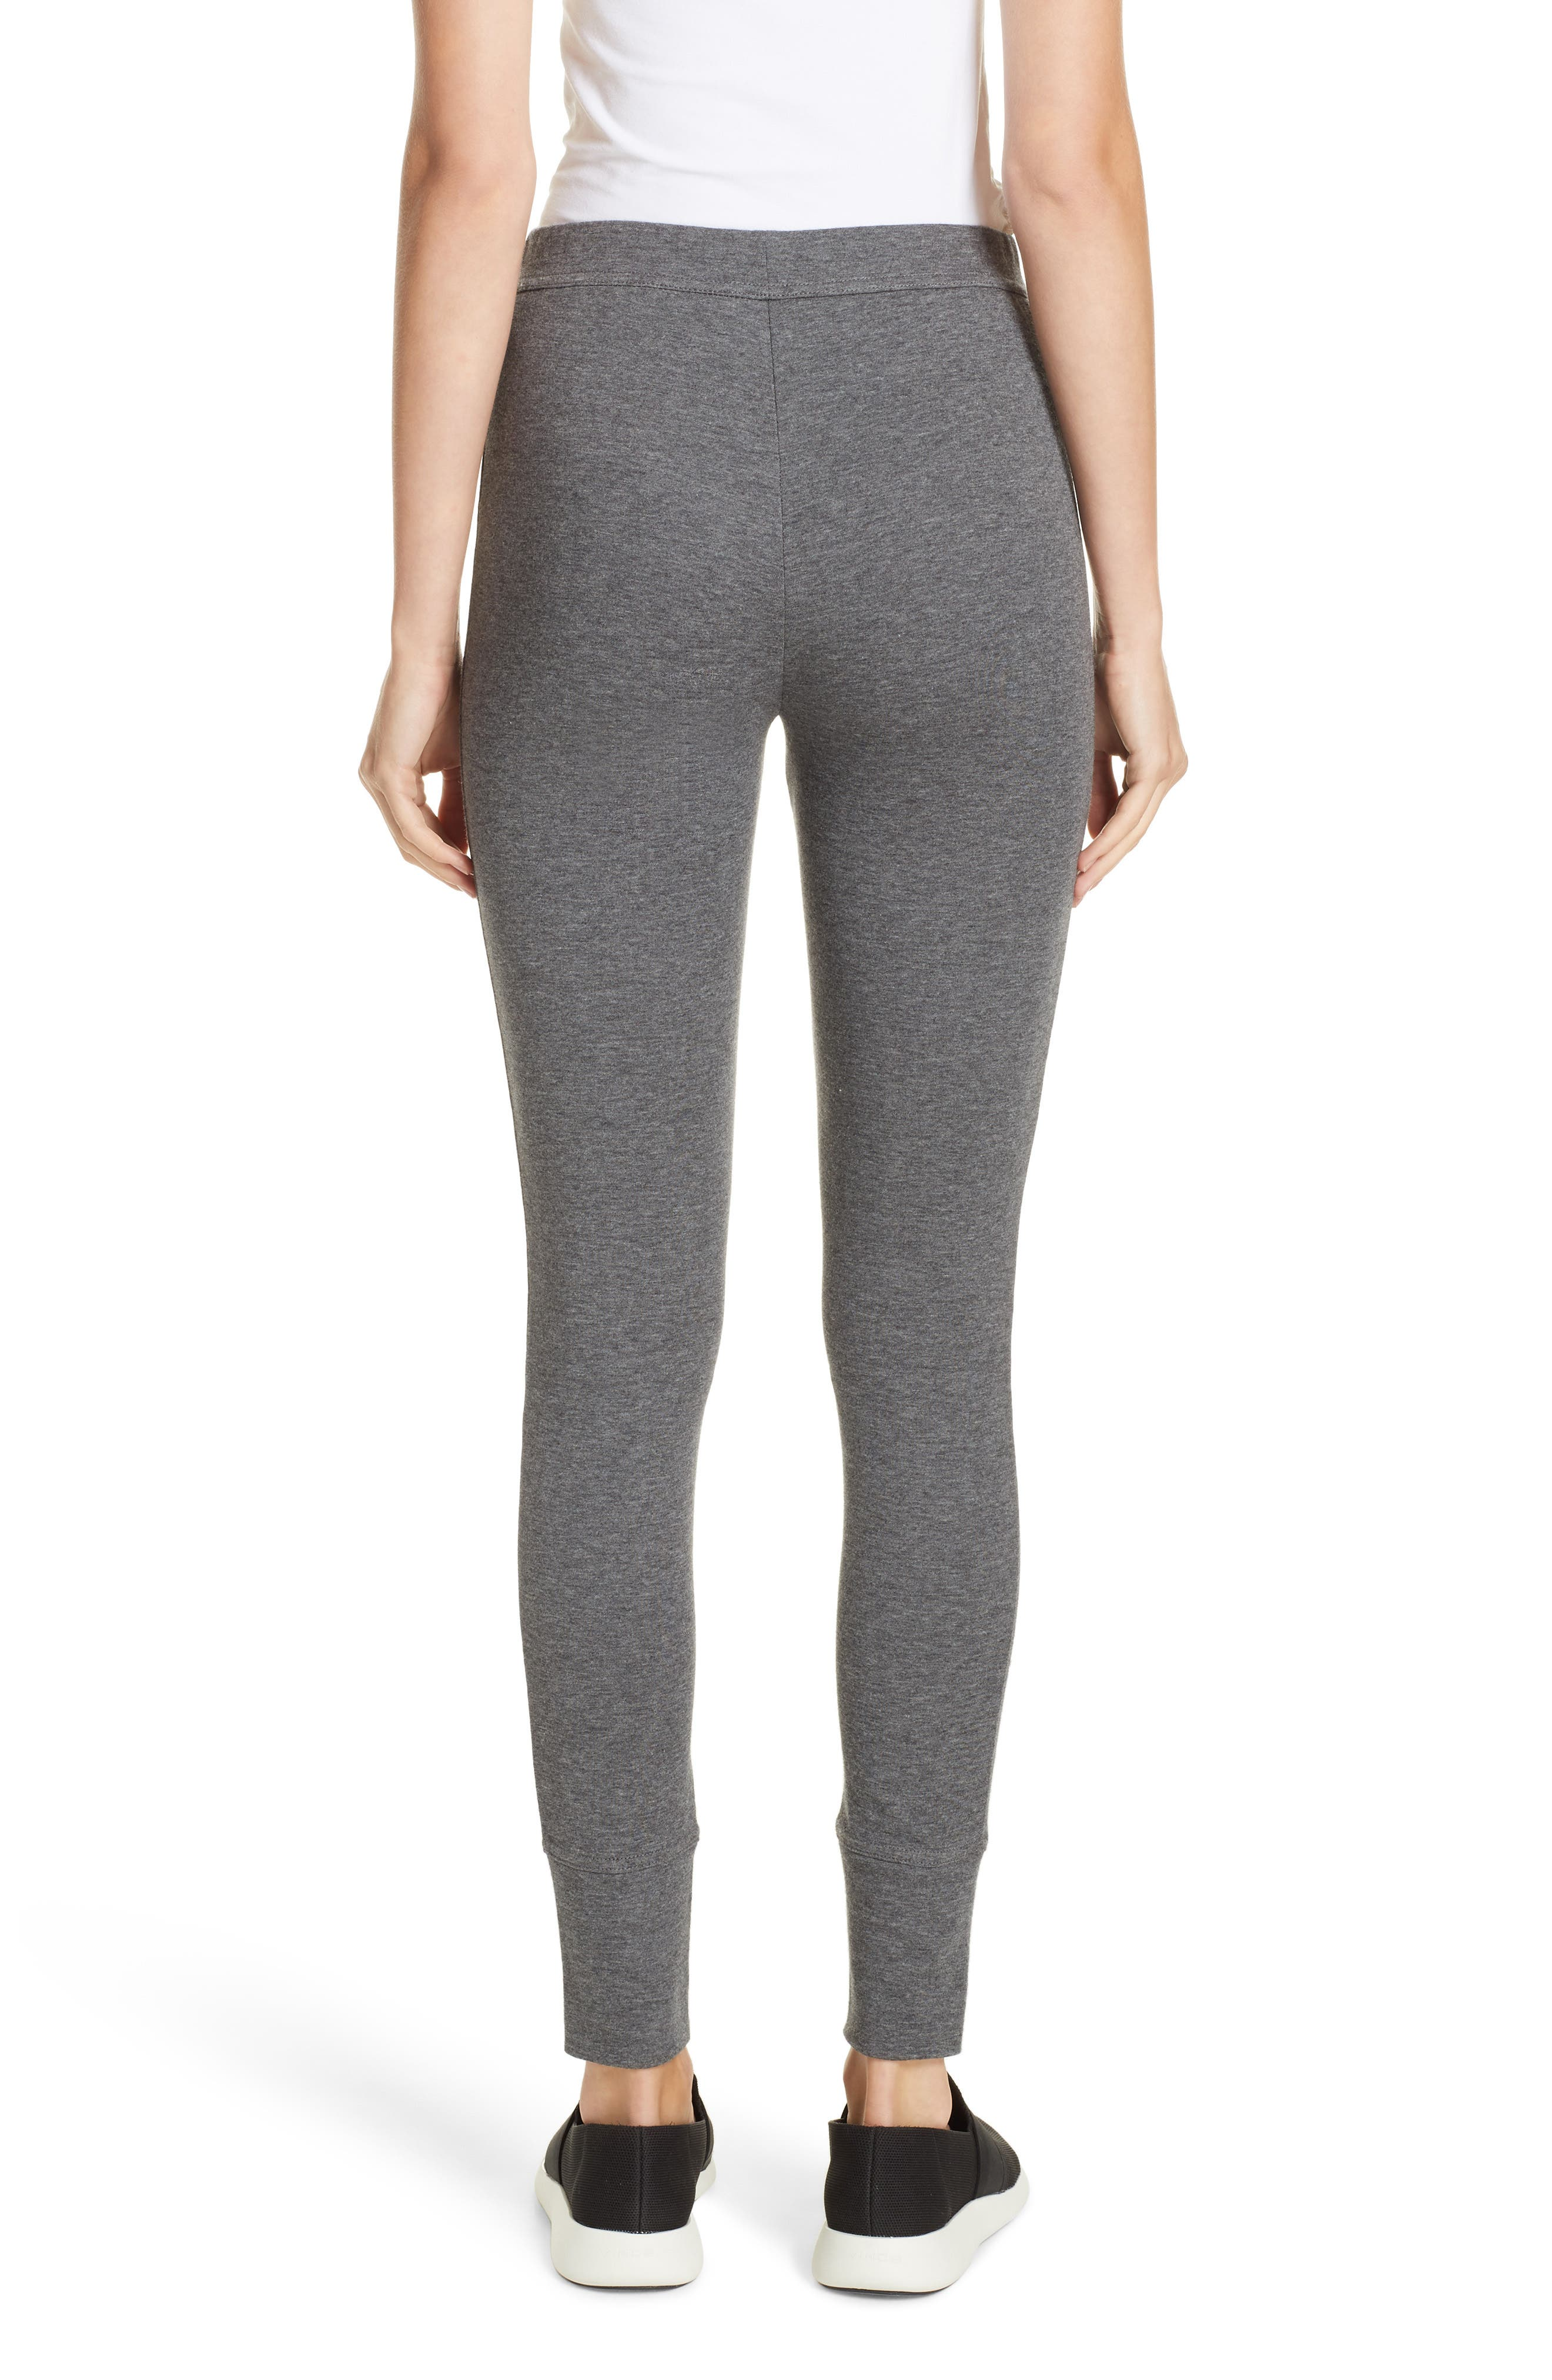 Heathered Cotton Blend Leggings,                             Alternate thumbnail 2, color,                             HEATHER CHARCOAL